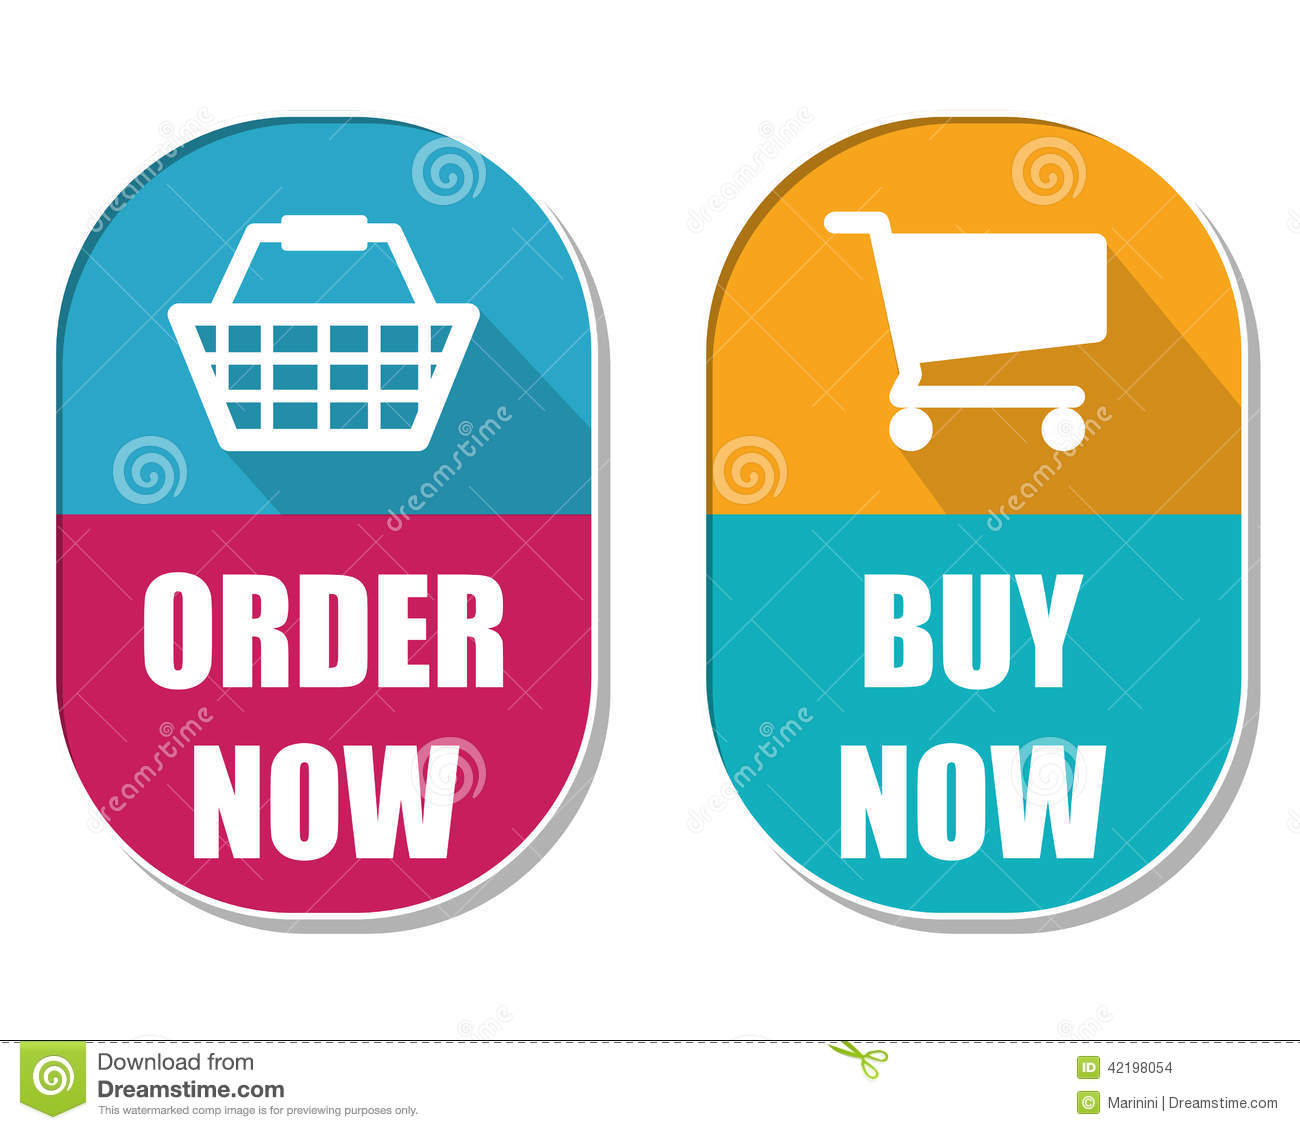 Buy This Now: Order Now And Buy Now With Shopping Basket And Cart Signs